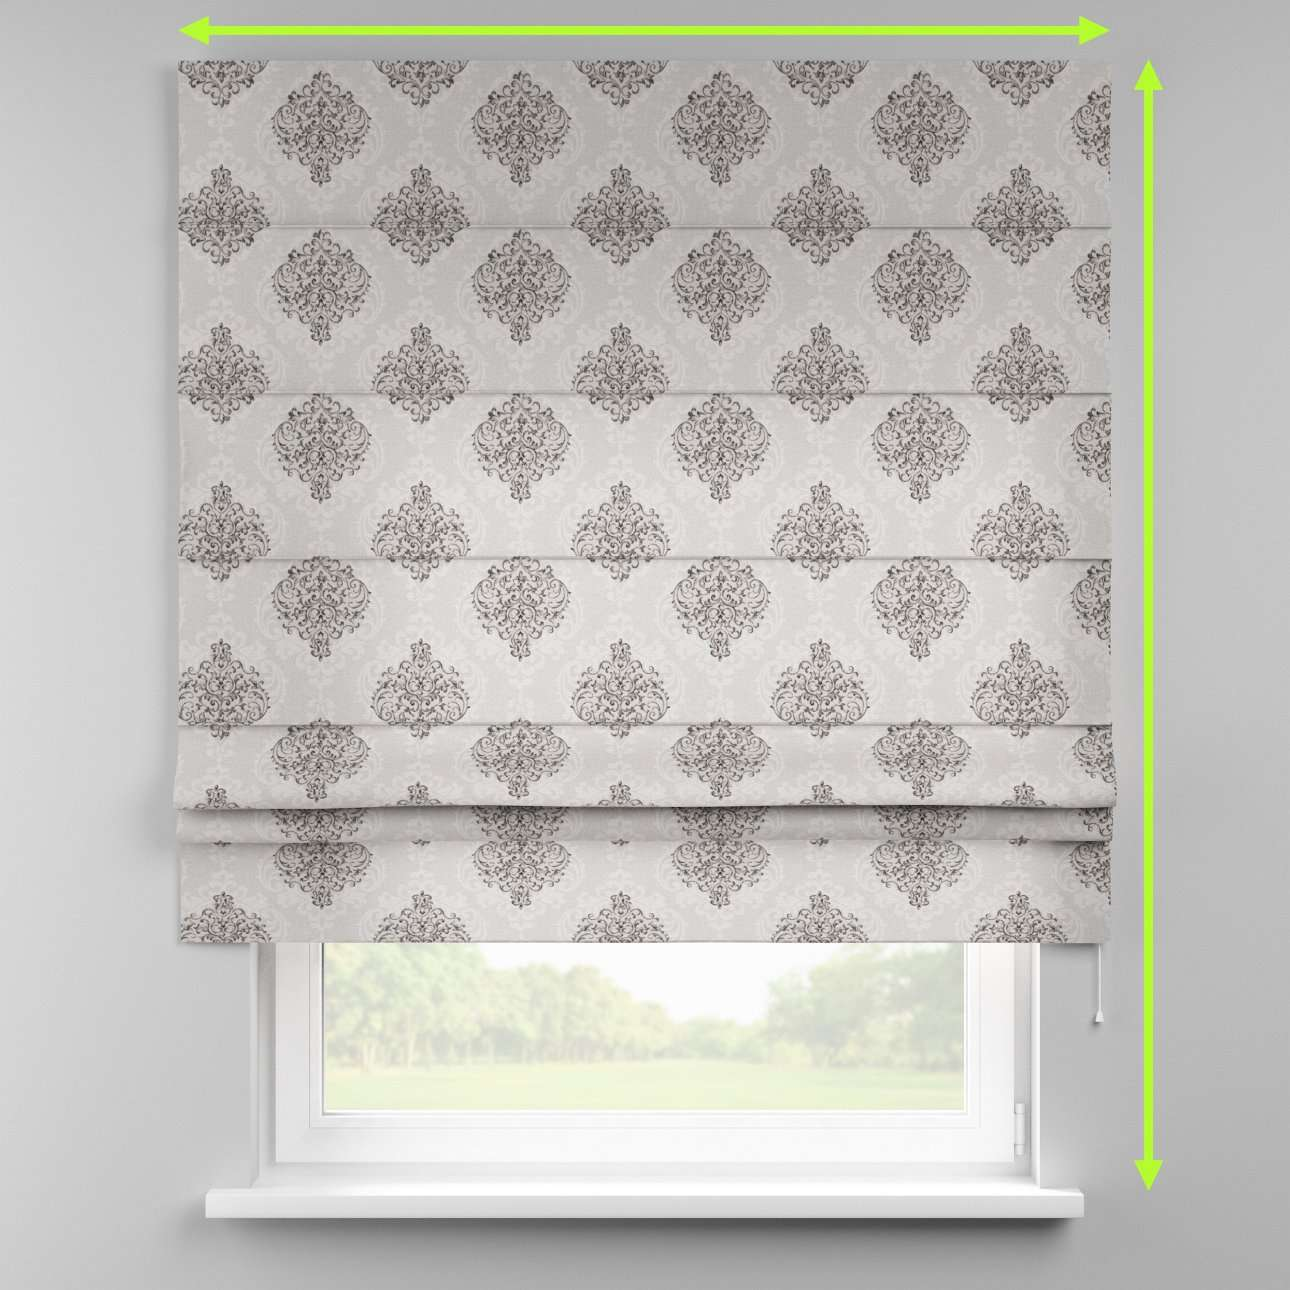 Padva roman blind  in collection Rustica, fabric: 138-16